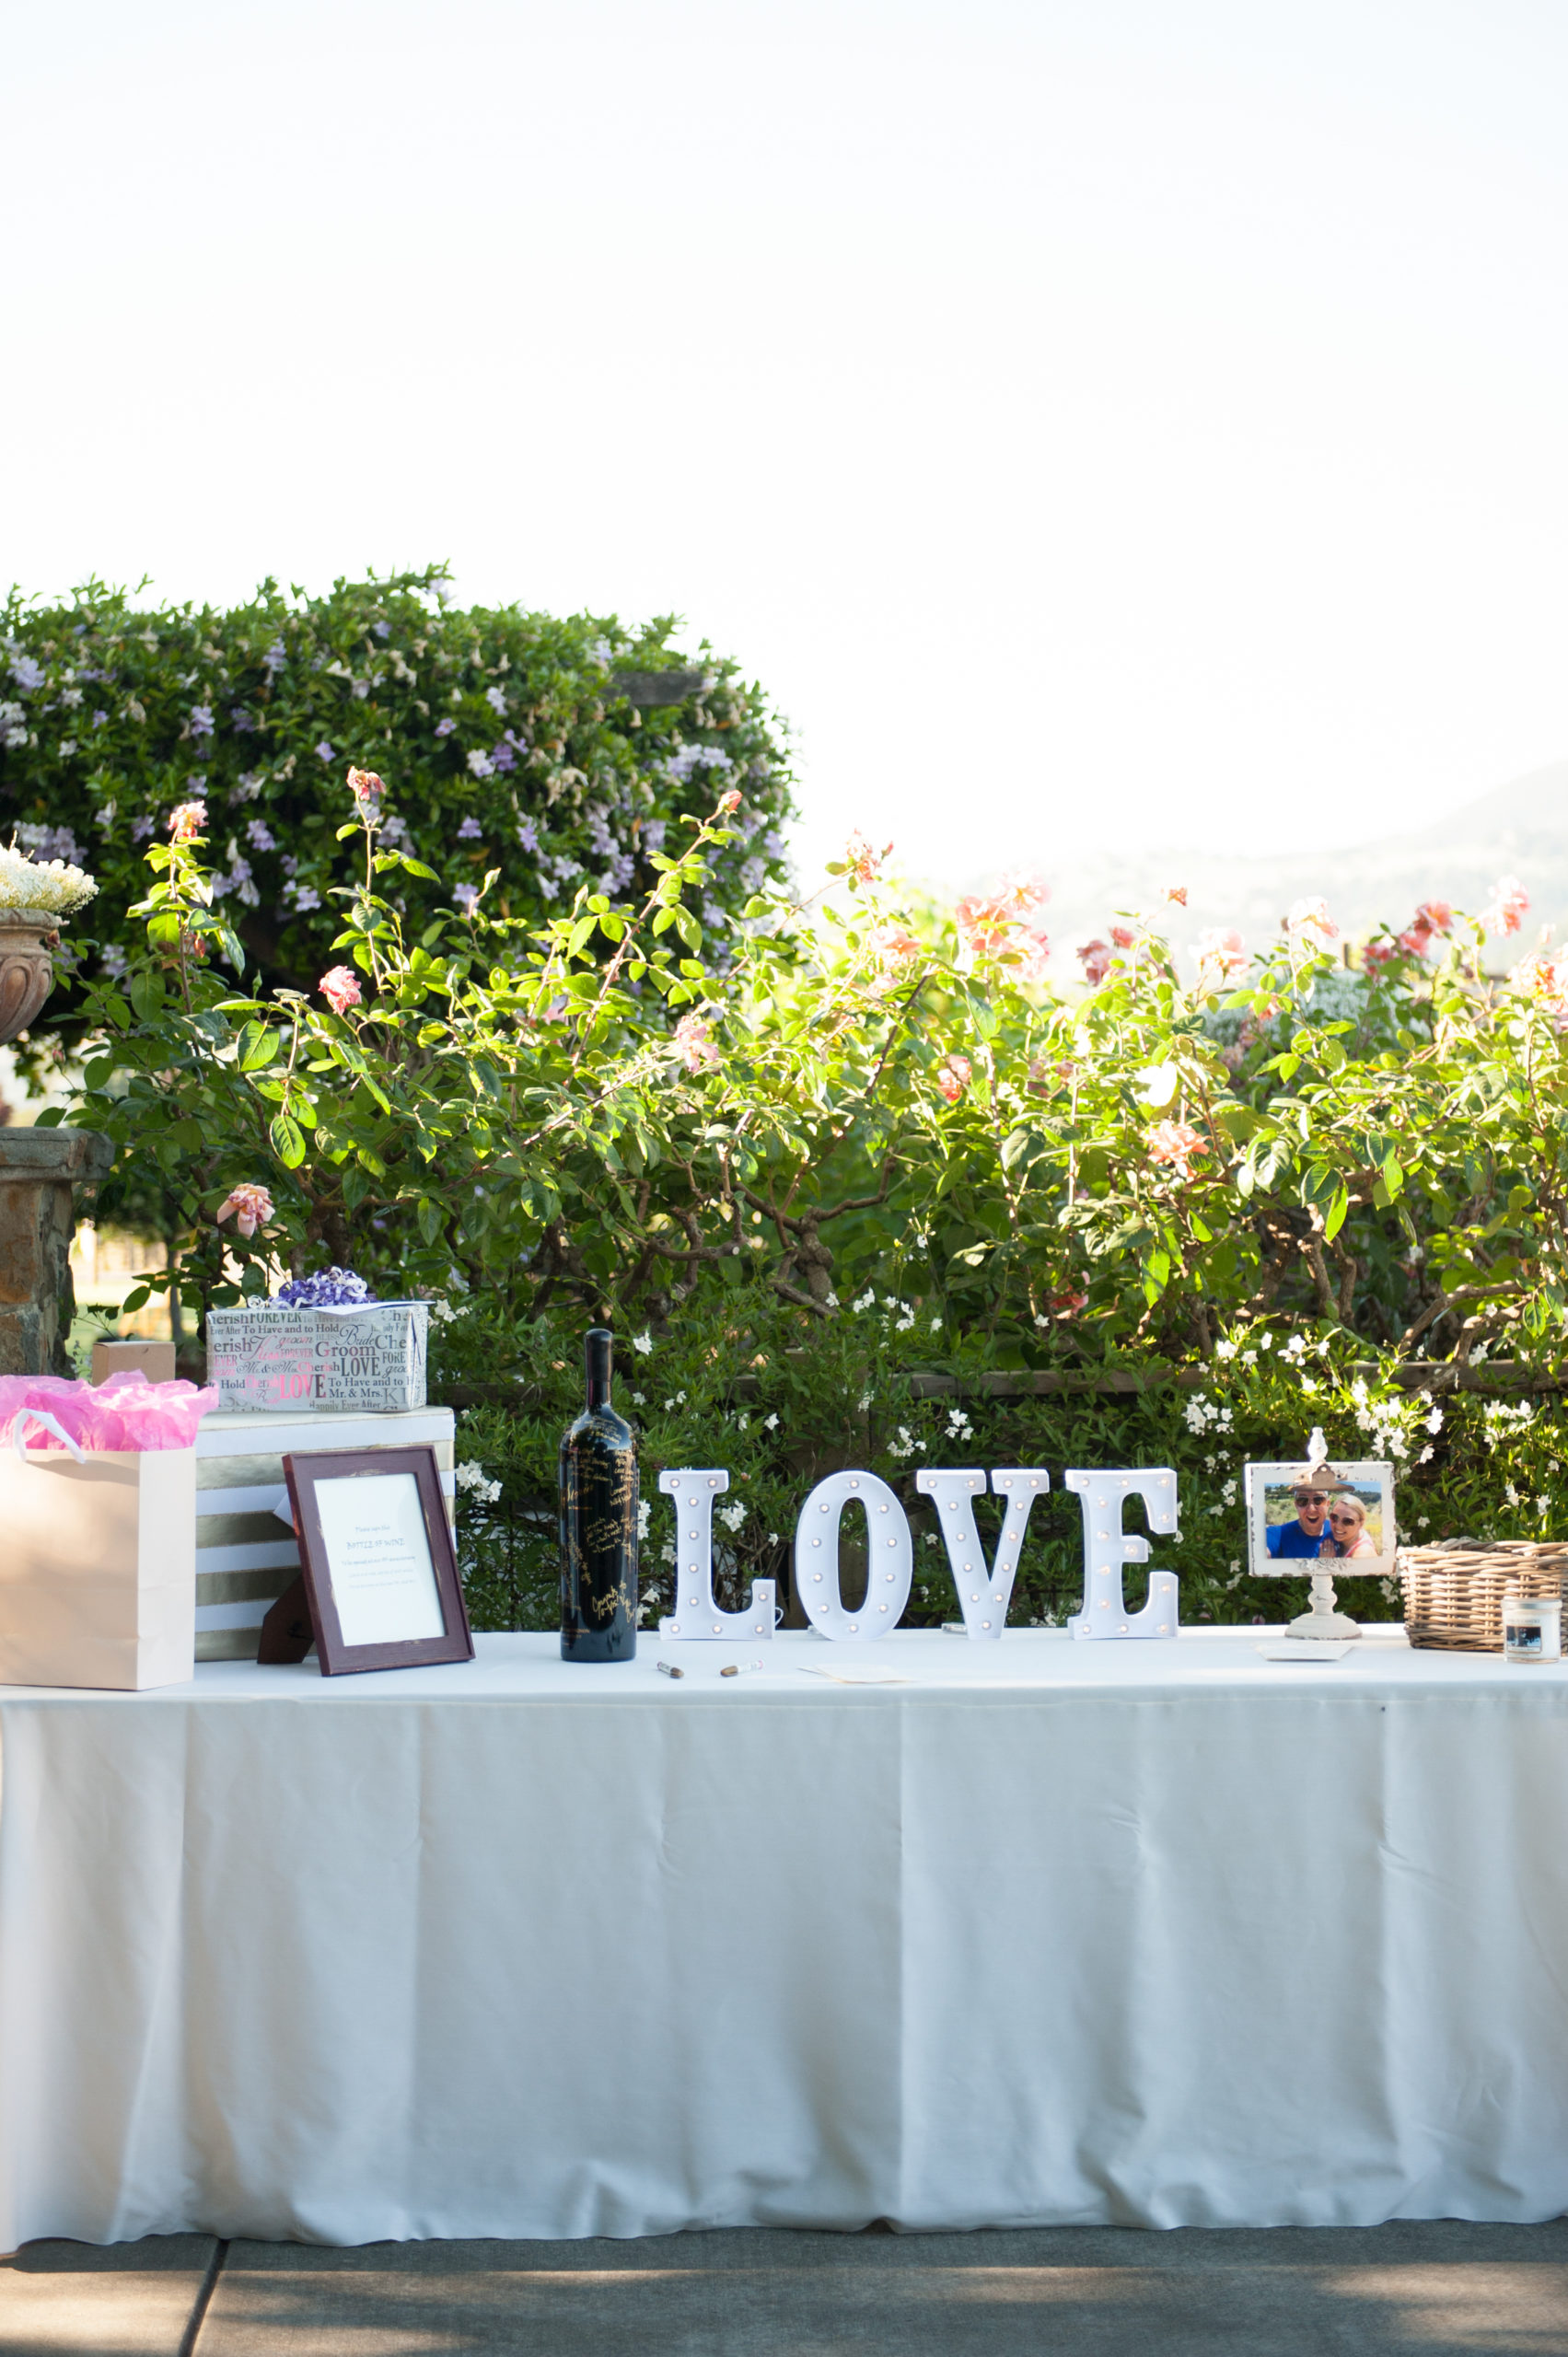 Wedding Gift Etiquette-Do's and Don'ts